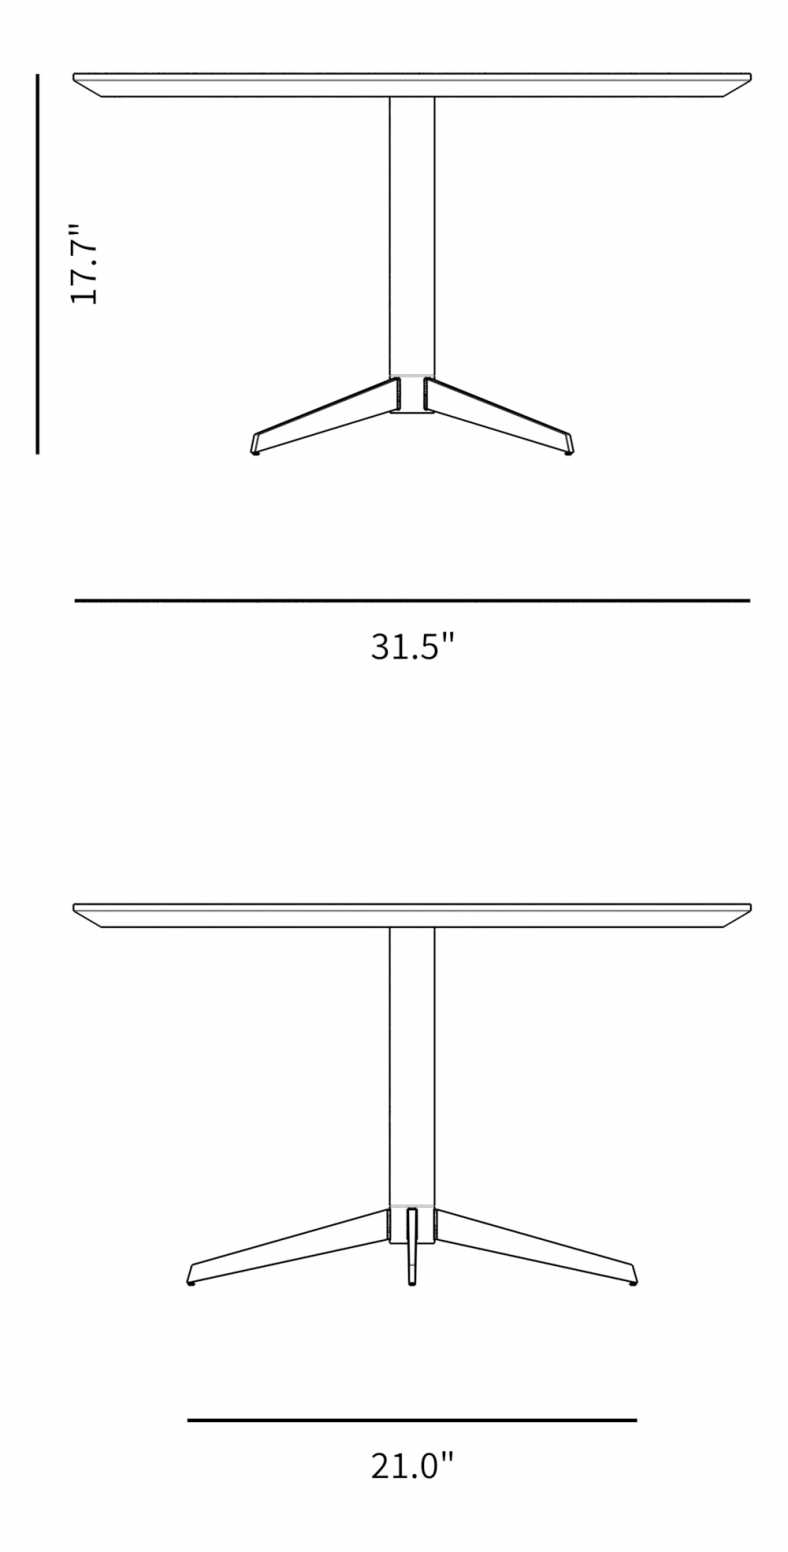 Dimensions for Sten Coffee Table